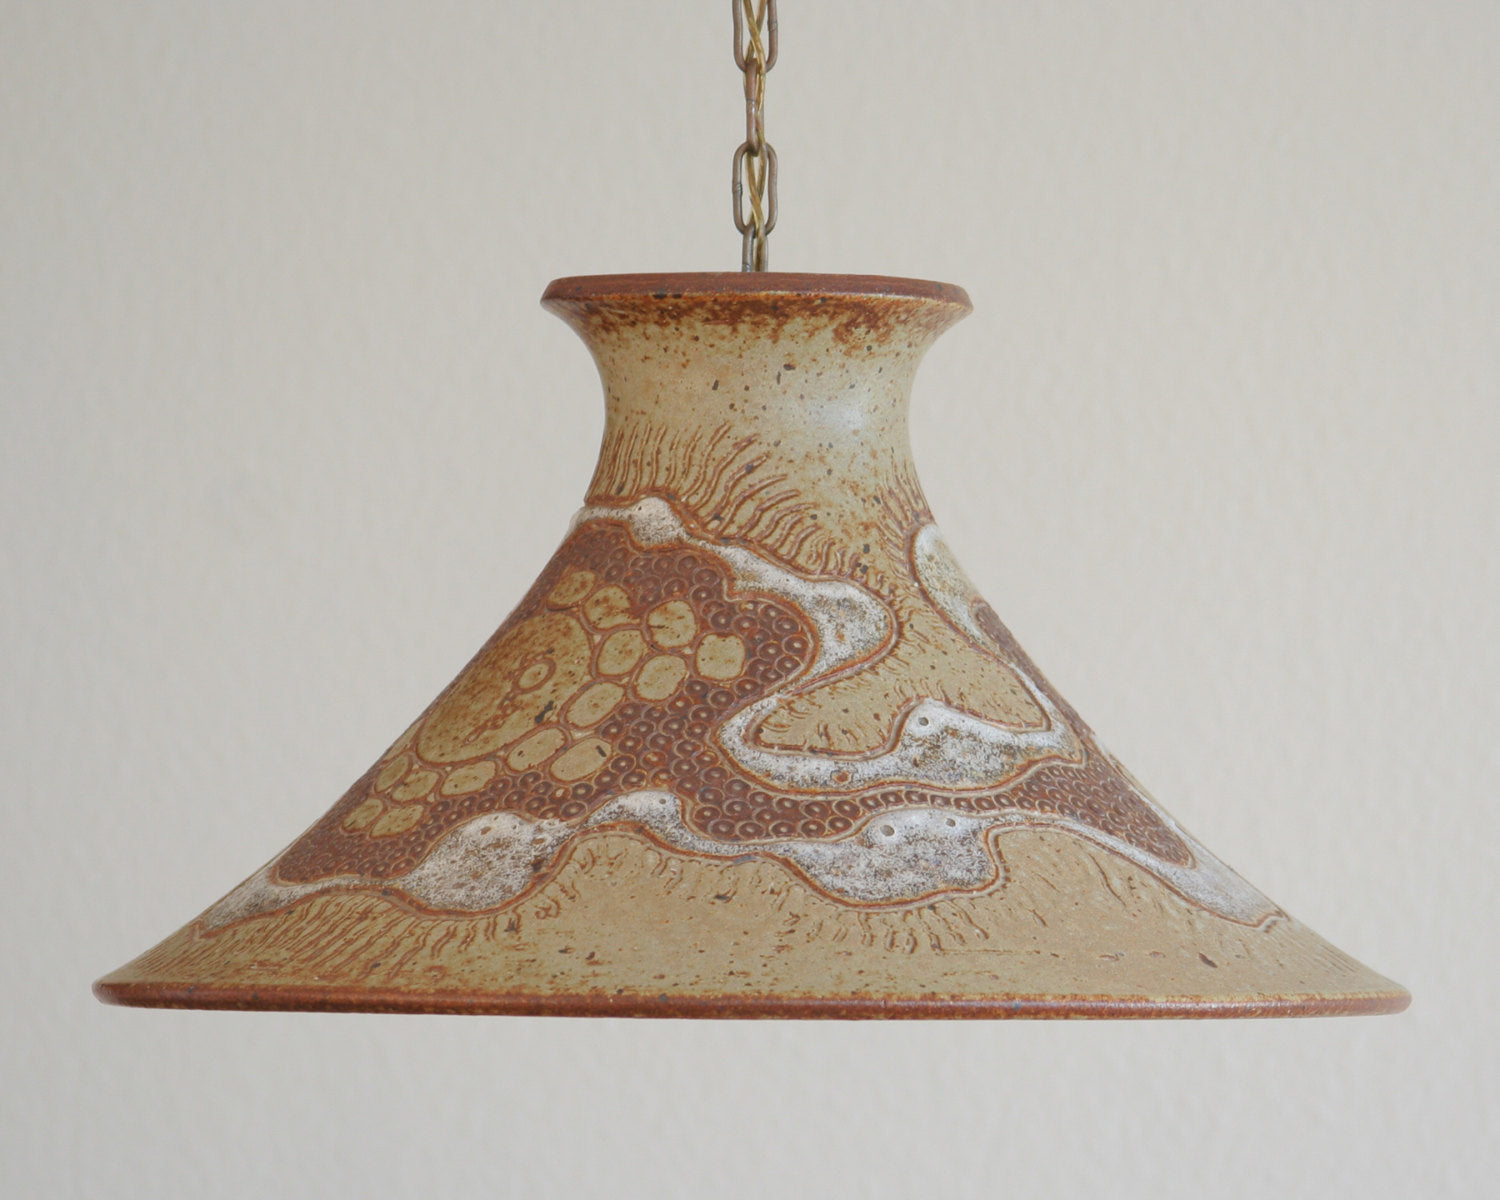 METTE LØKKE STIIL Studio Large Organic Decorated Stoneware Pendant Light - Mollaris.com